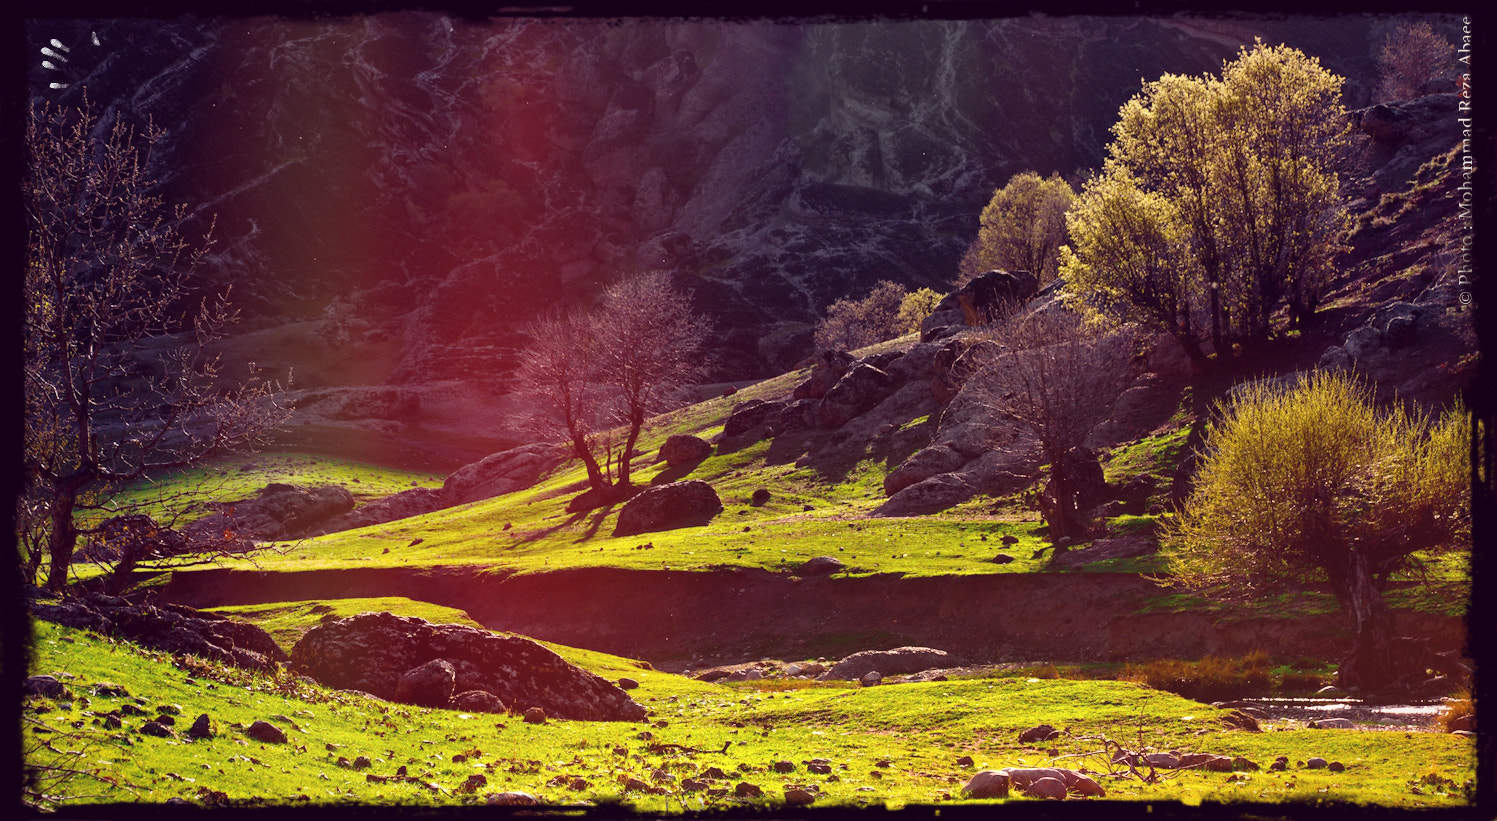 Photograph Heaven?! by Mohammad Reza Abaee on 500px